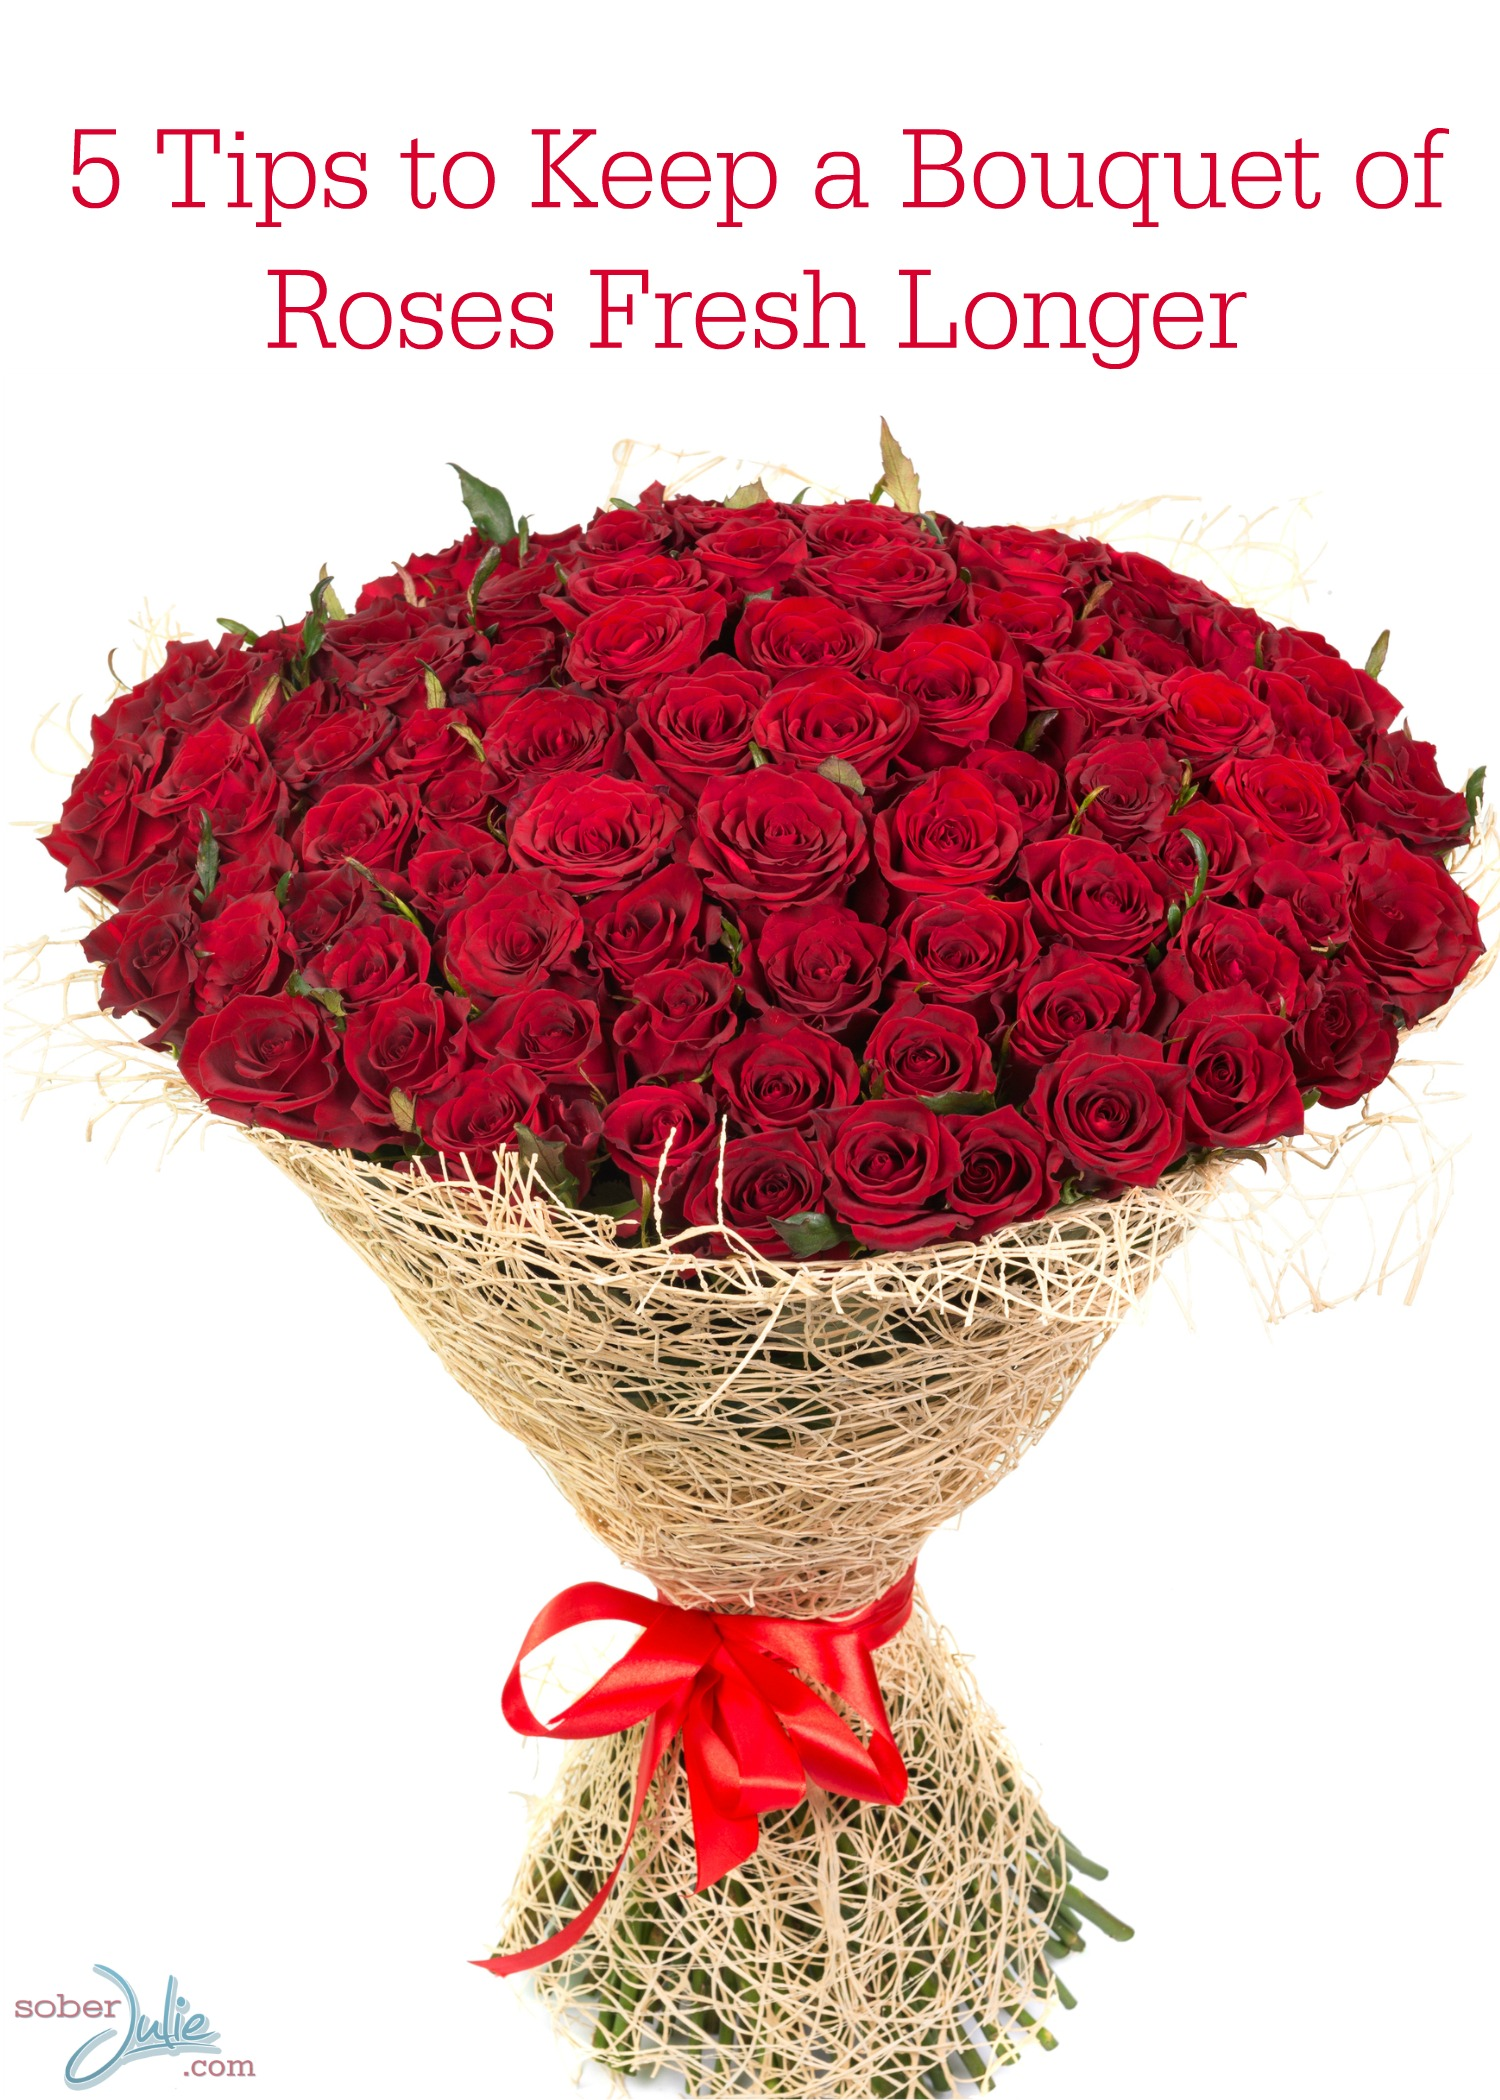 5 Tips to Keep a Bouquet of Roses Fresh Longer